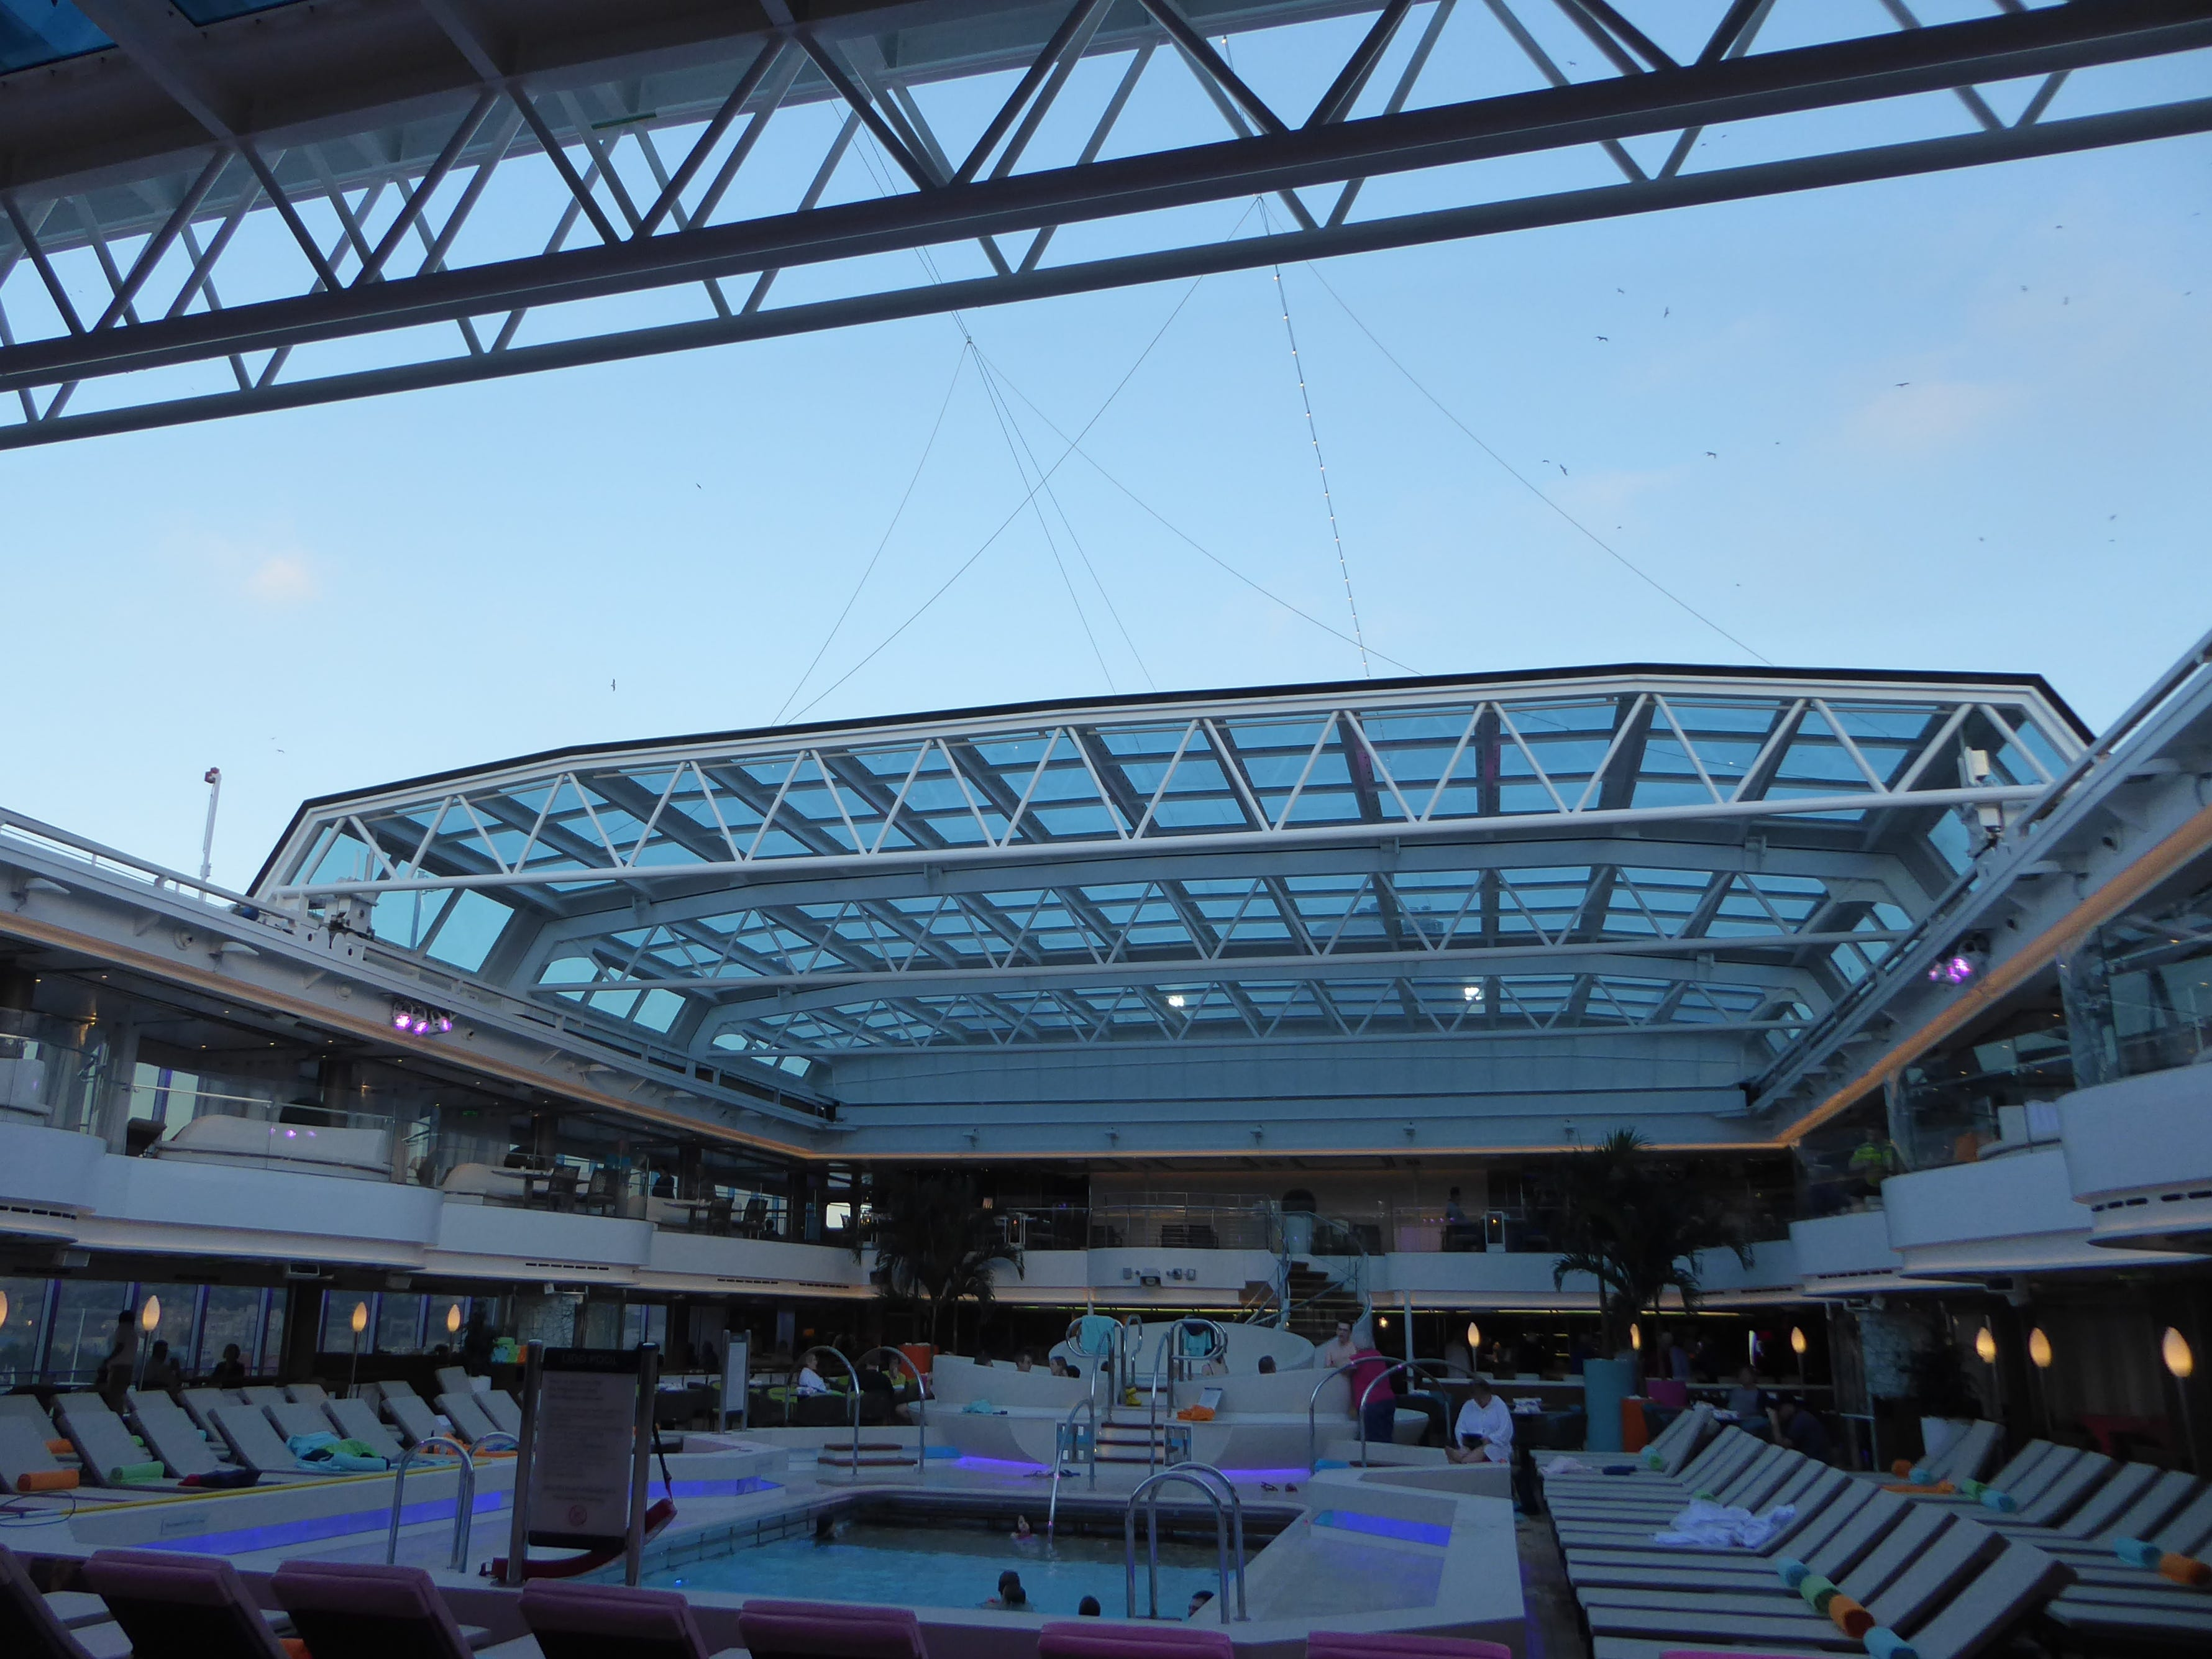 This is a view of the Deck 9 Lido Pool area with the sliding glass dome ajar.